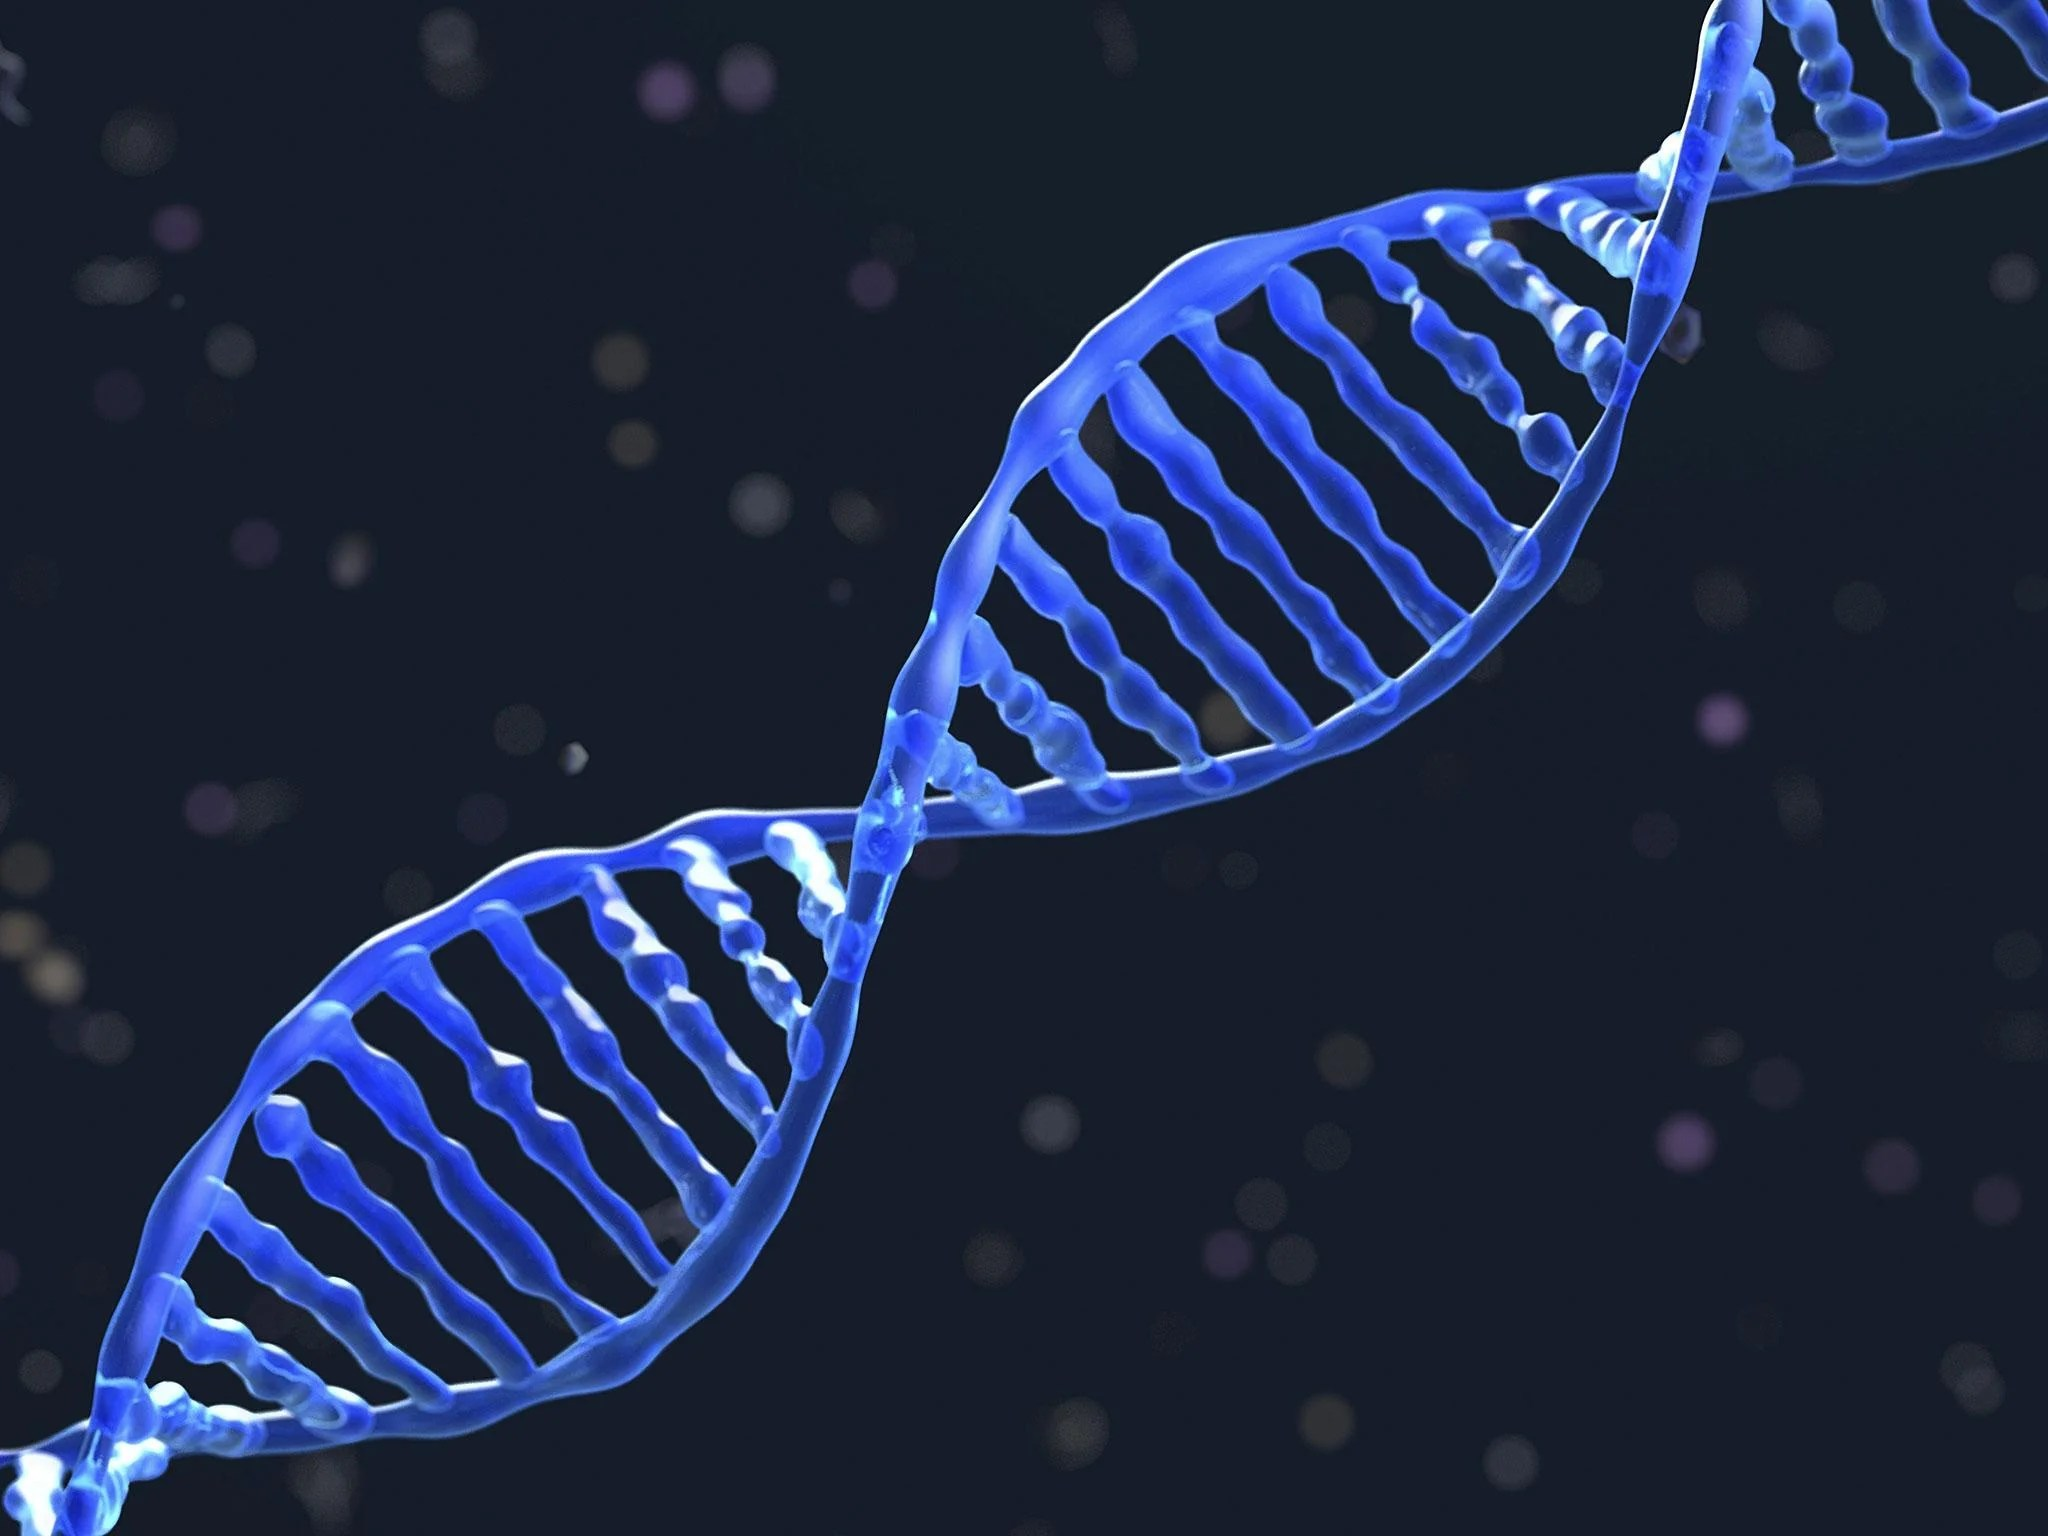 dna editing breakthrough could